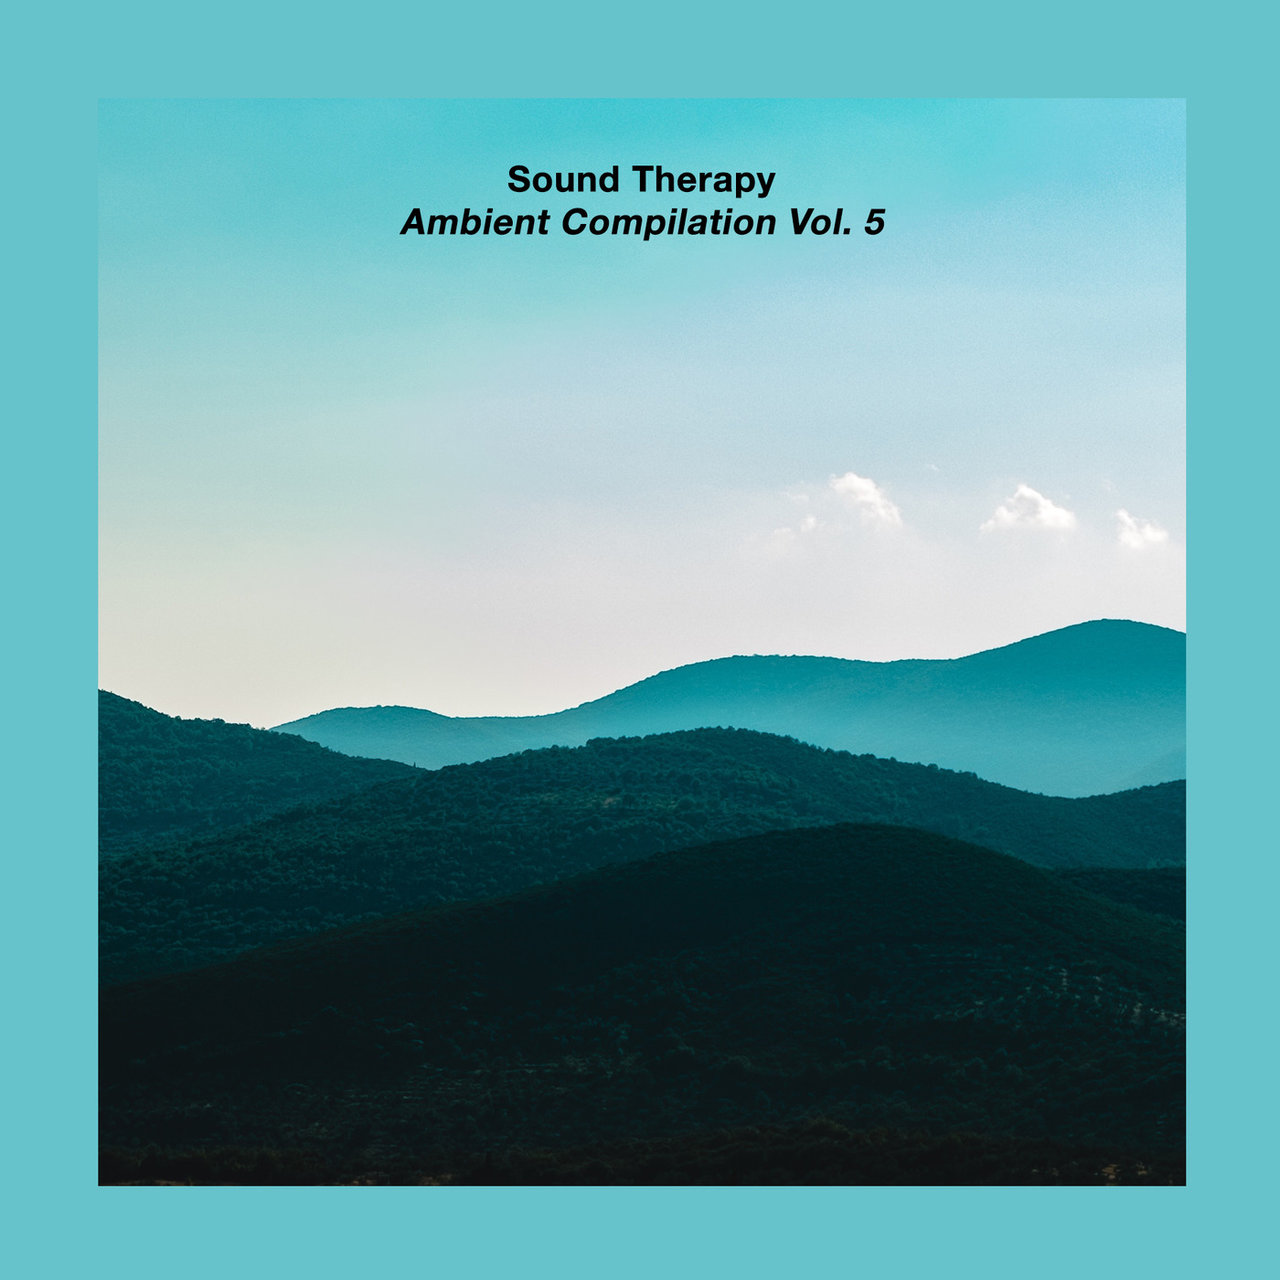 Ambient Compilation, Vol. 5: Sound Therapy